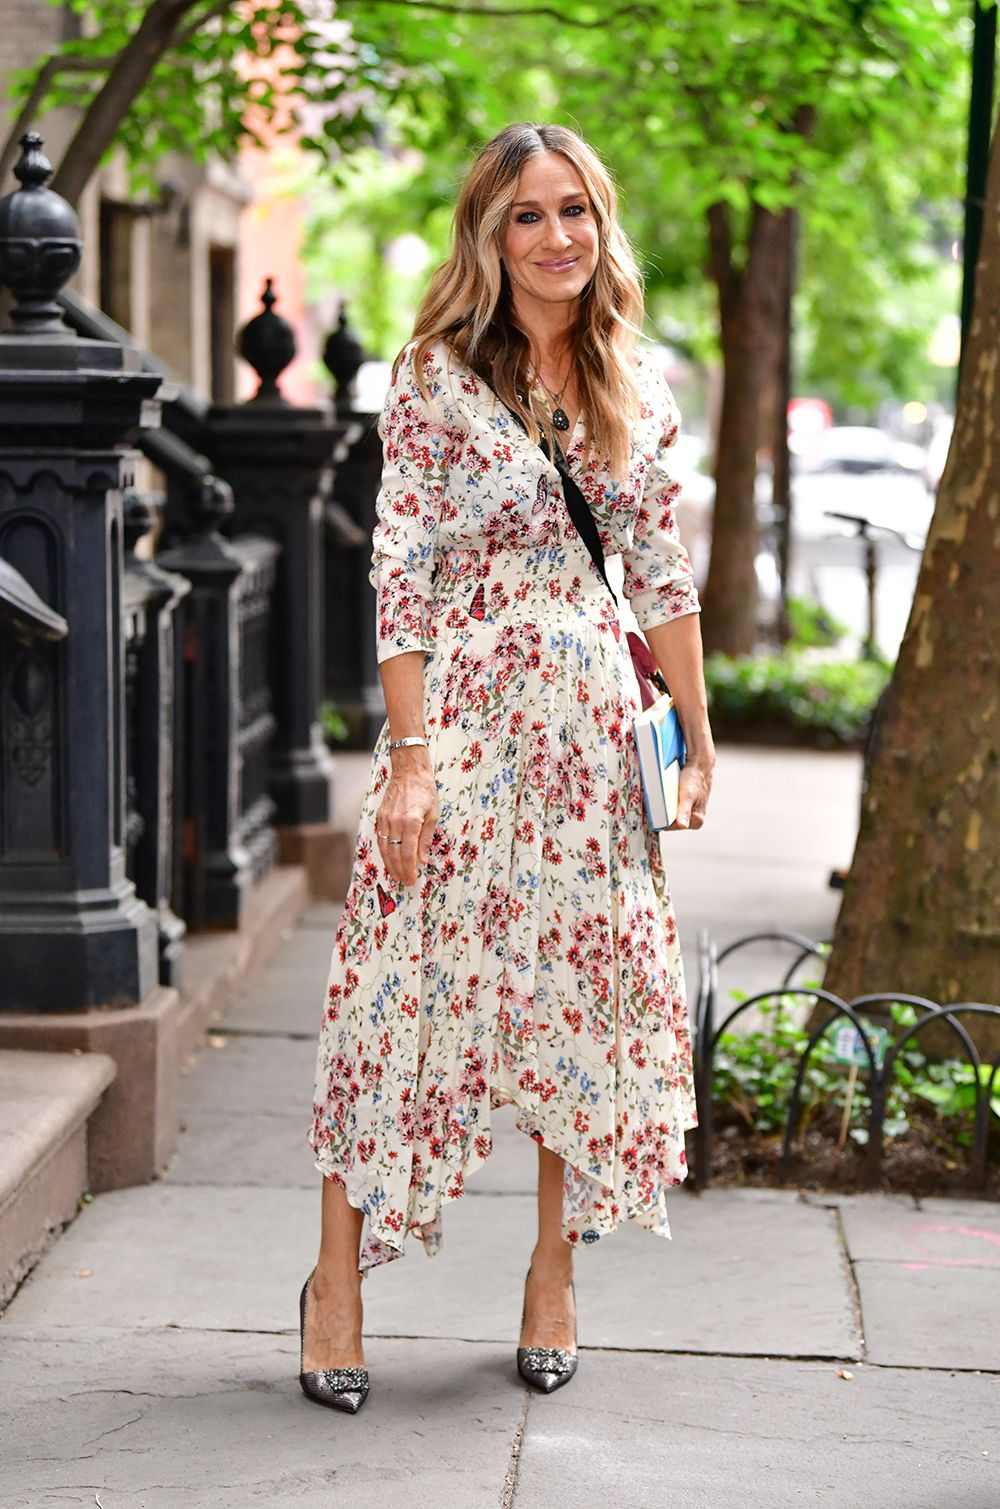 Spring Summer trends 2019: From 'Cold Shoulder Tops' to 'Flared